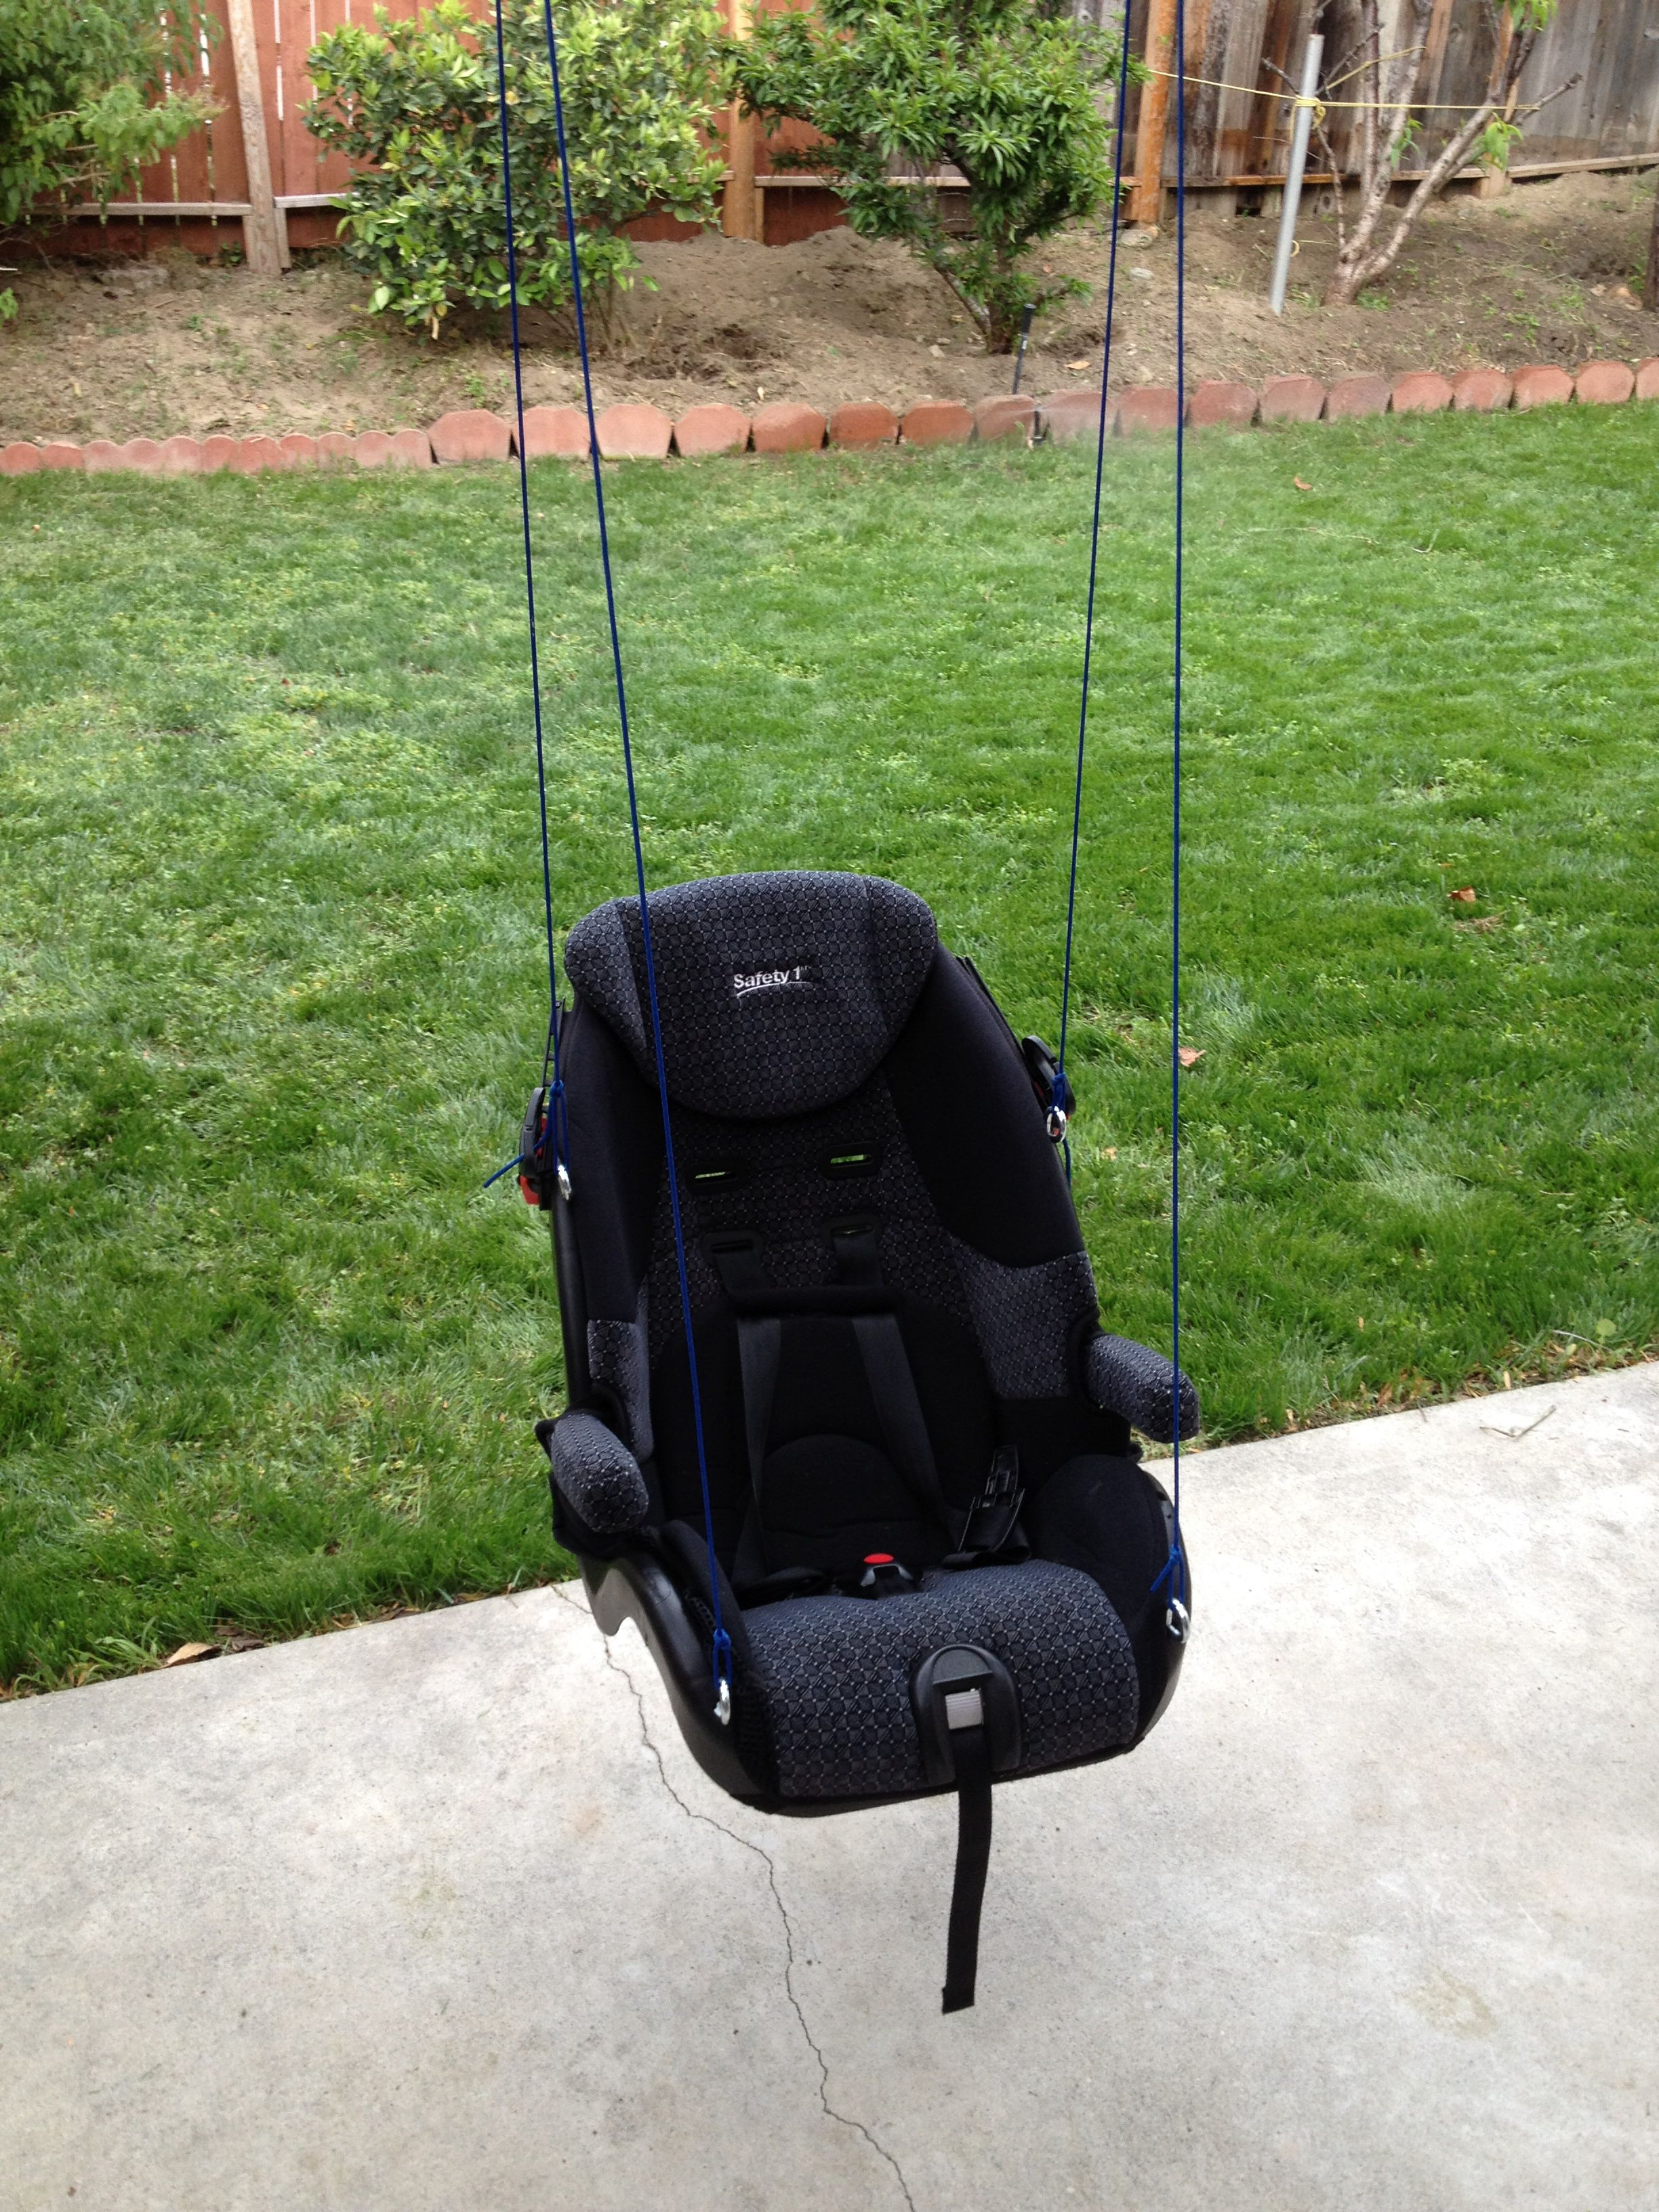 diy car seat upcycle diy baby swing outdoor awesome idea with 5 point harness [ 2448 x 3264 Pixel ]